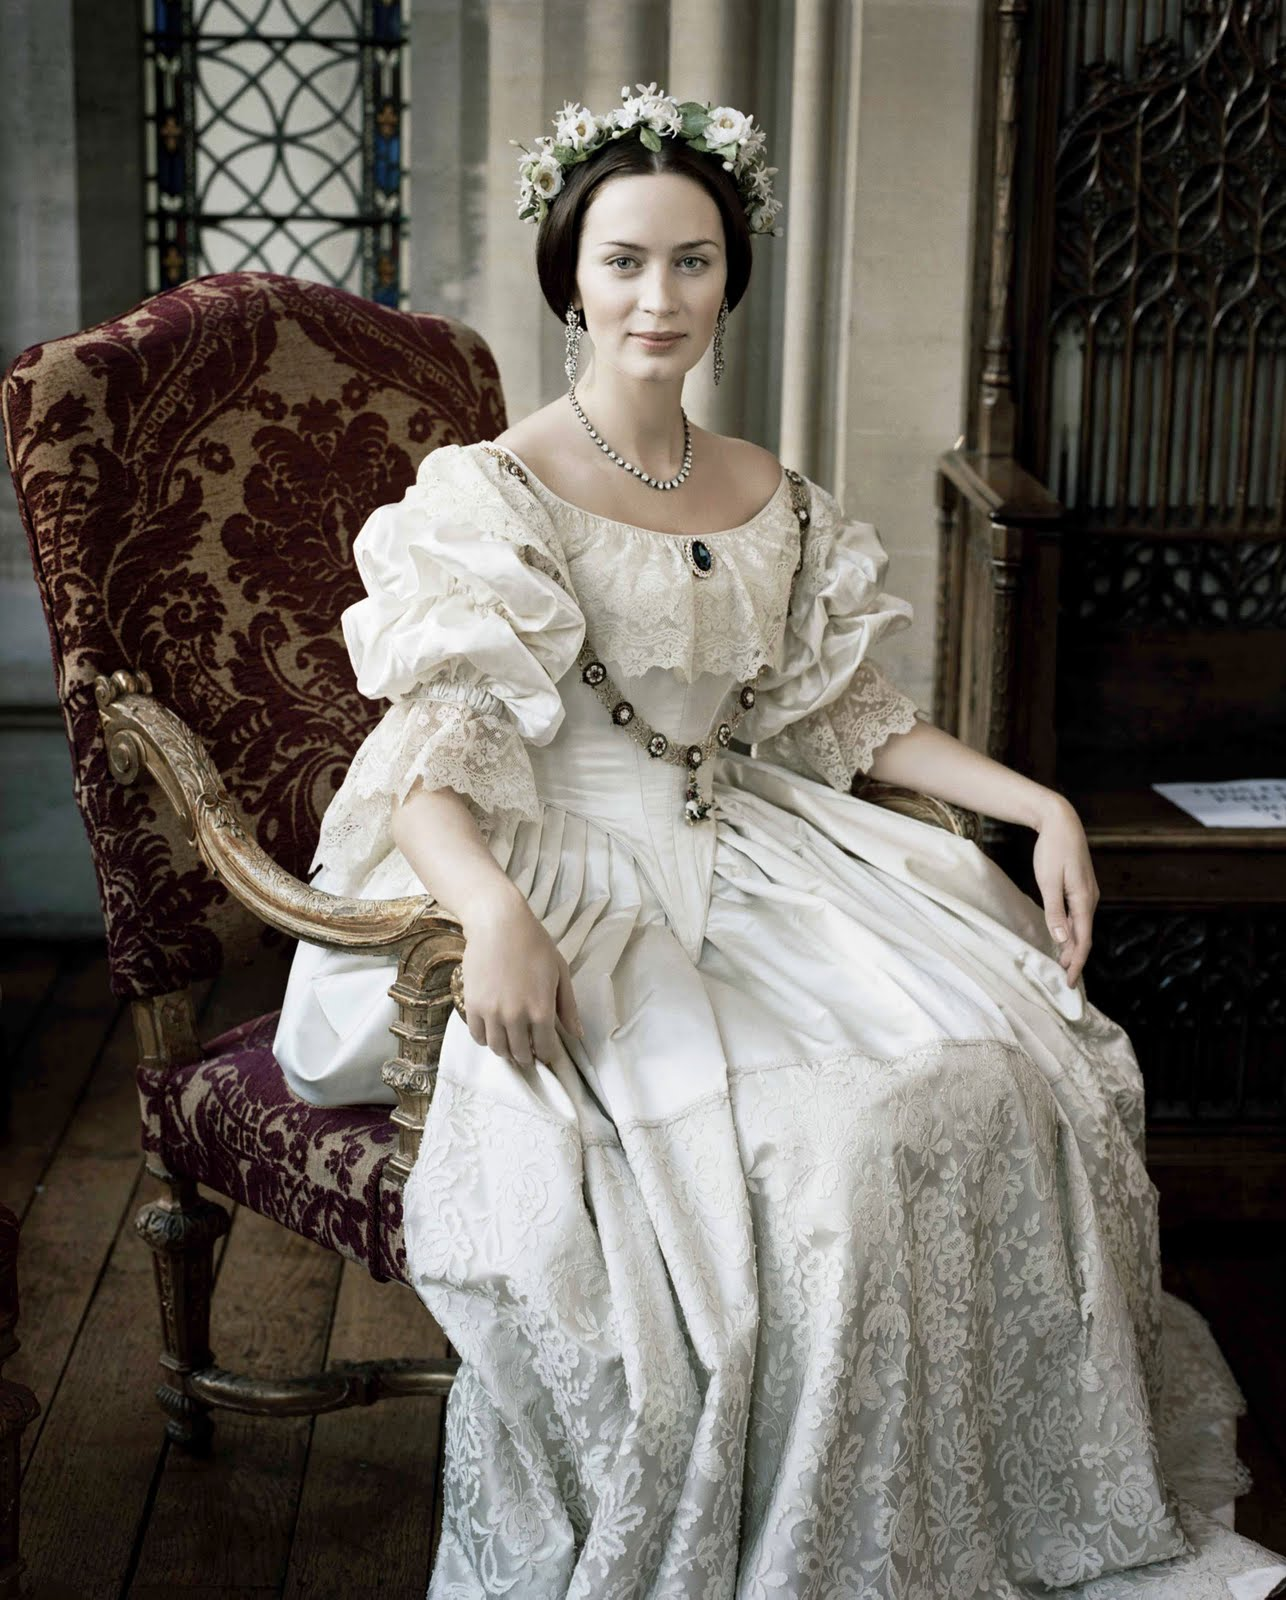 Sprigged Muslin: Fashion in Film: The Young Victoria